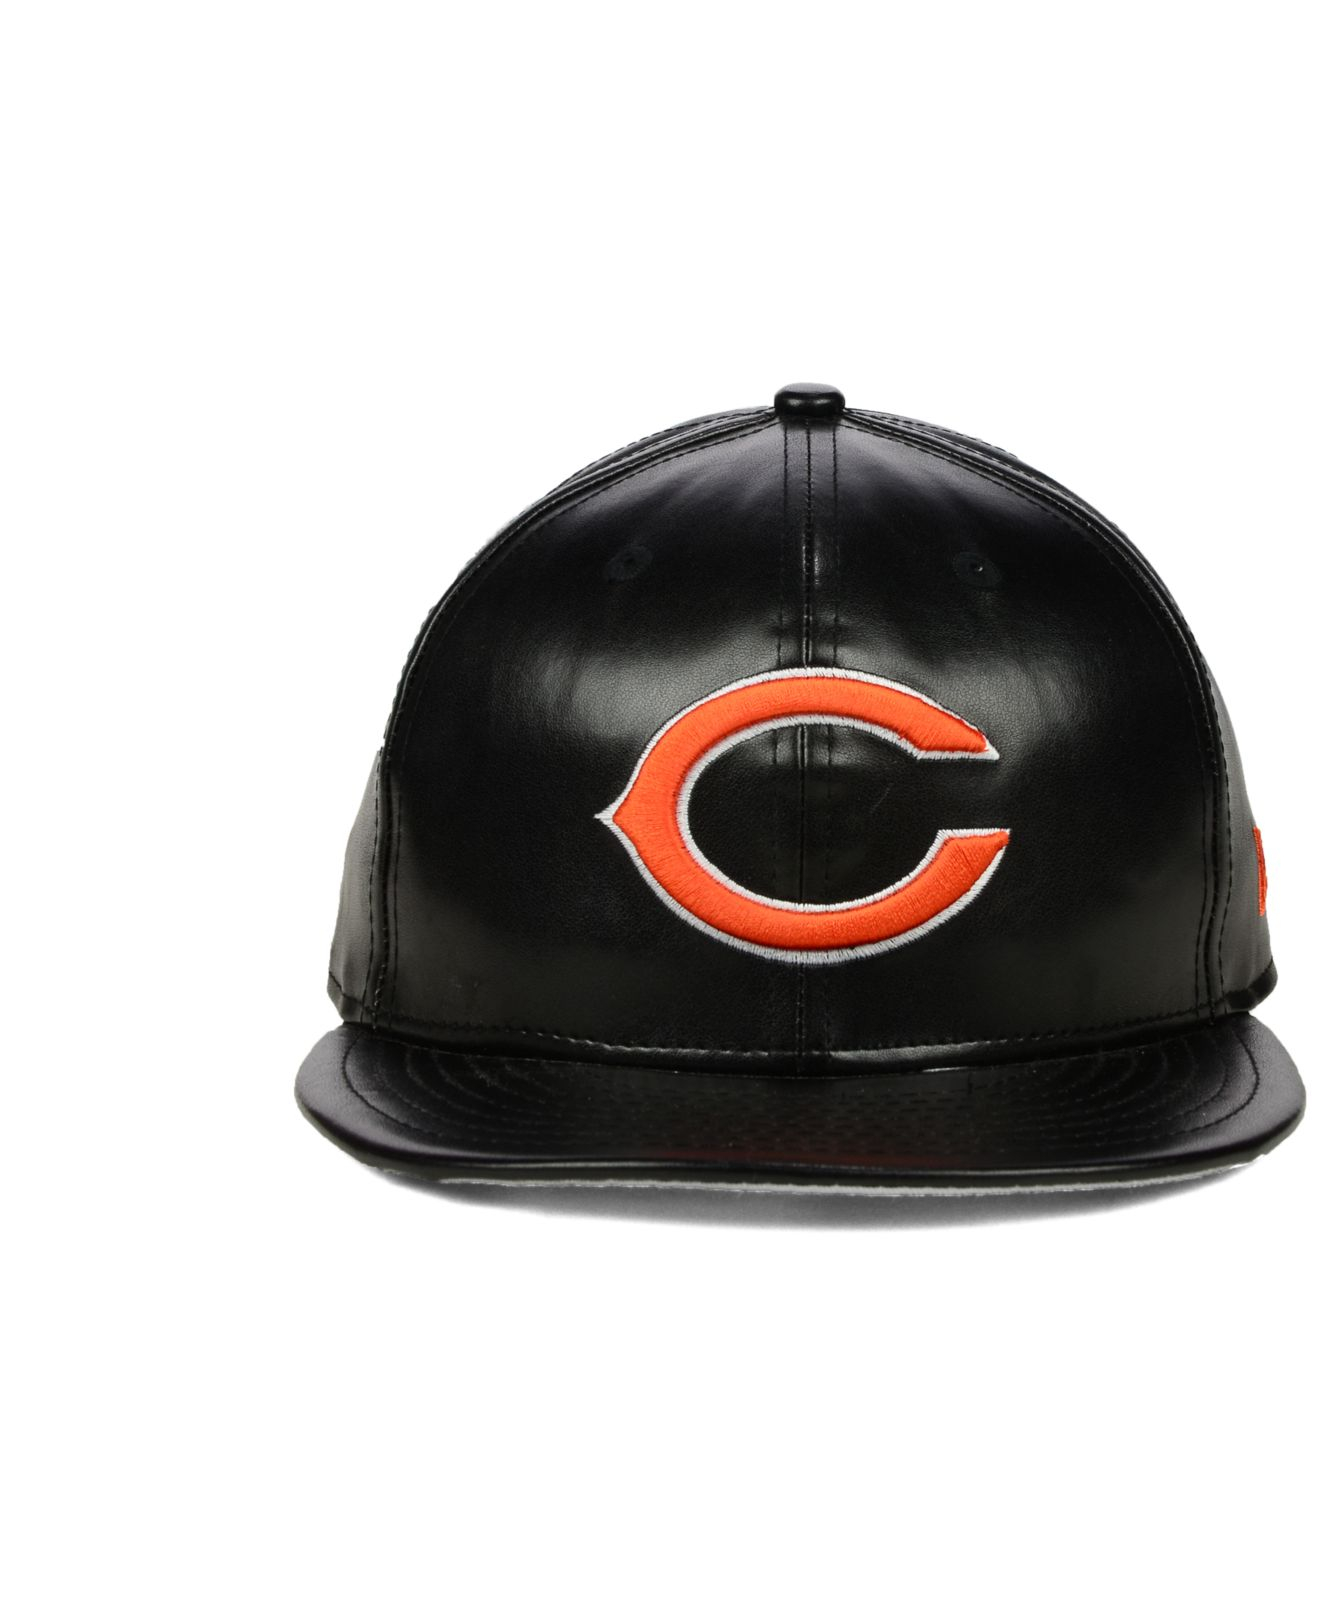 ebb41a7f01ab1 ... promo code for lyst ktz chicago bears faux leather 9fifty snapback cap  in black 6e62a 743d7